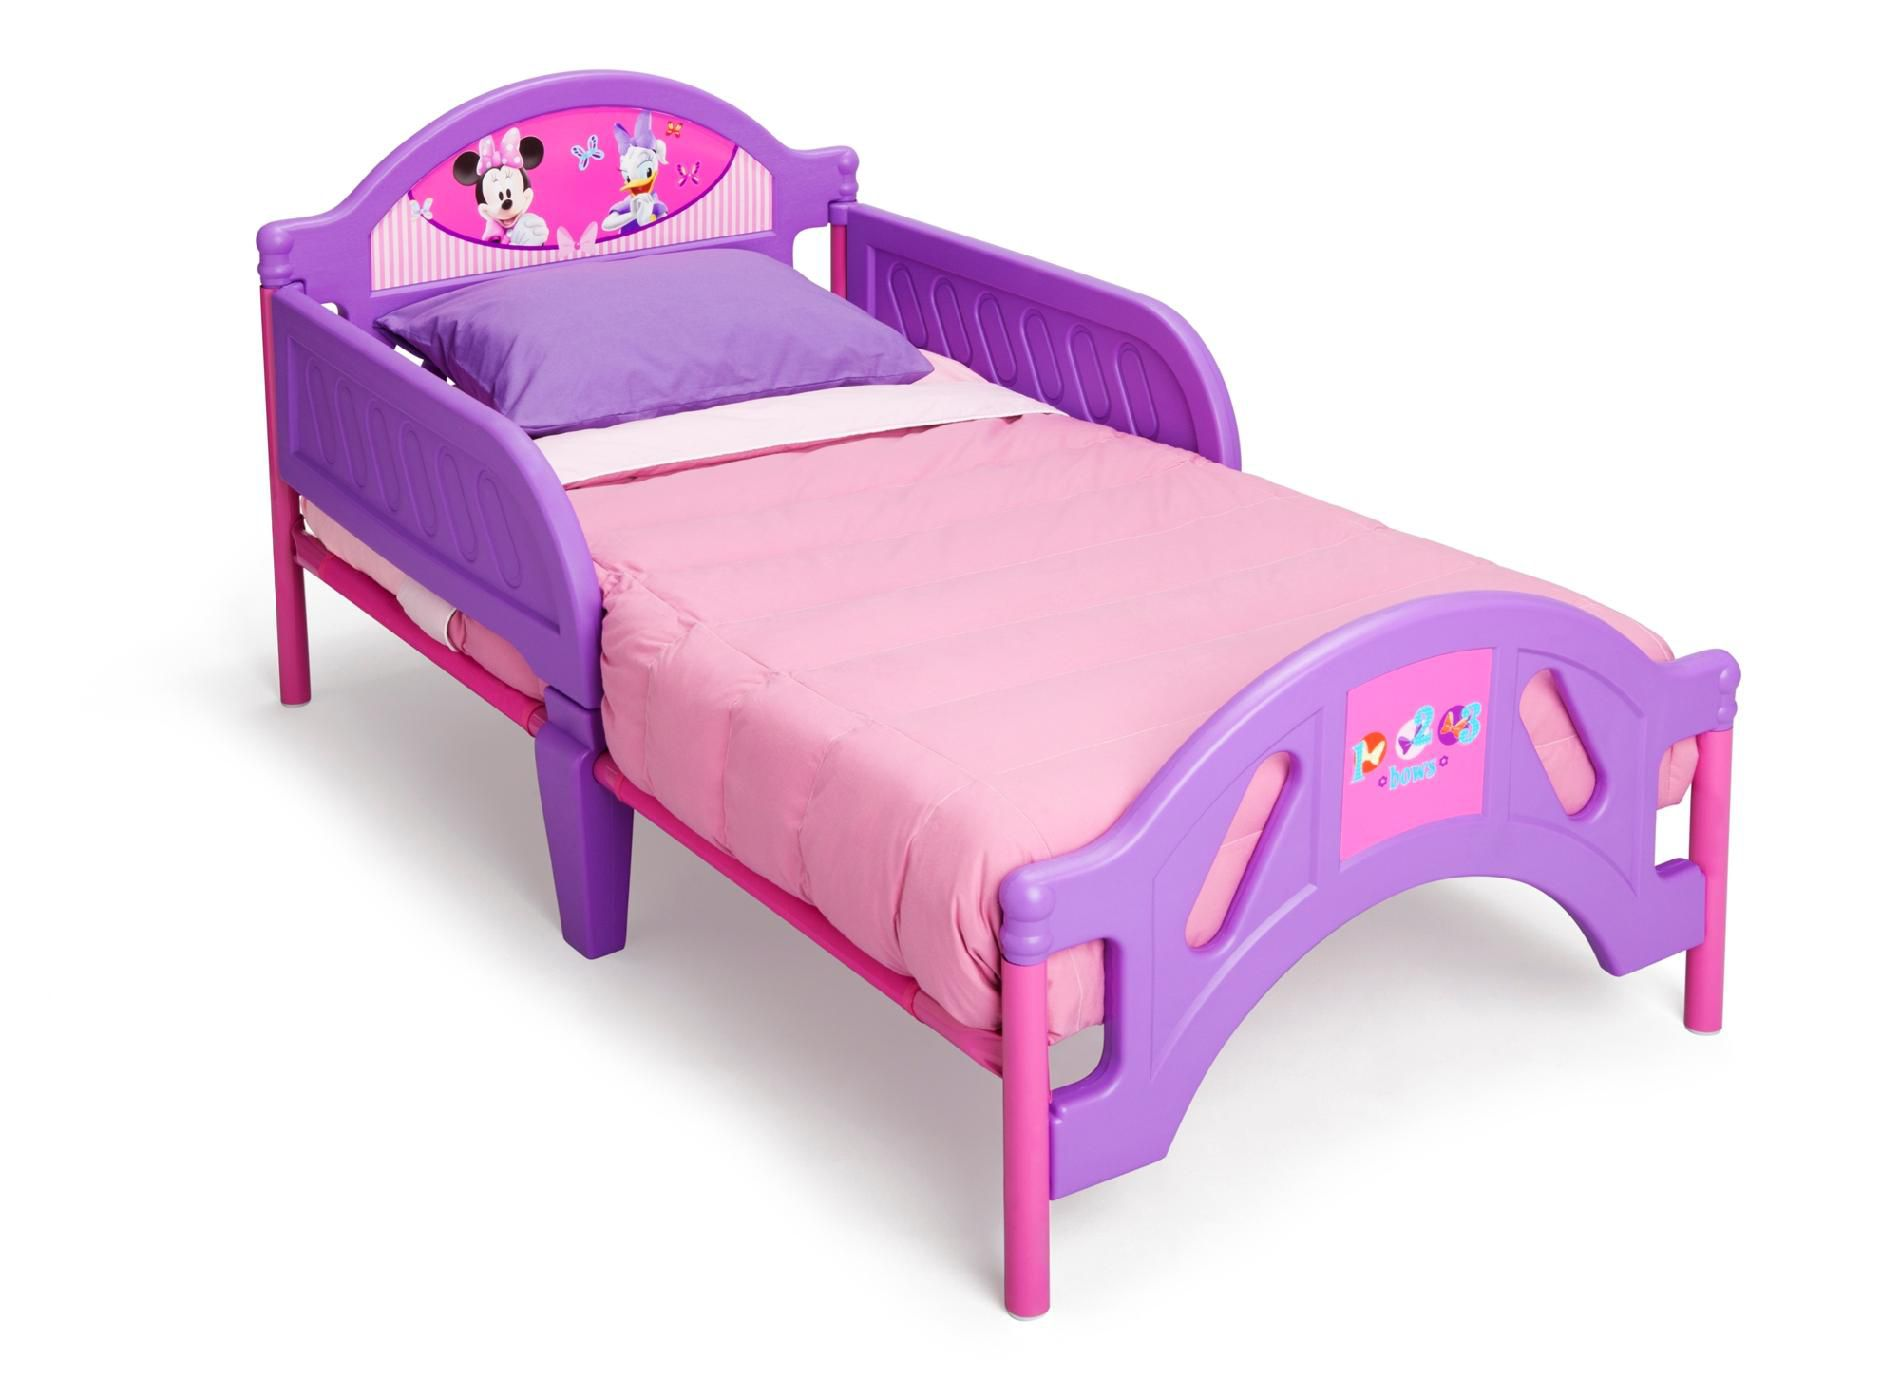 Cheap Toddler Beds Delta Minnie Mouse Toddler Bed